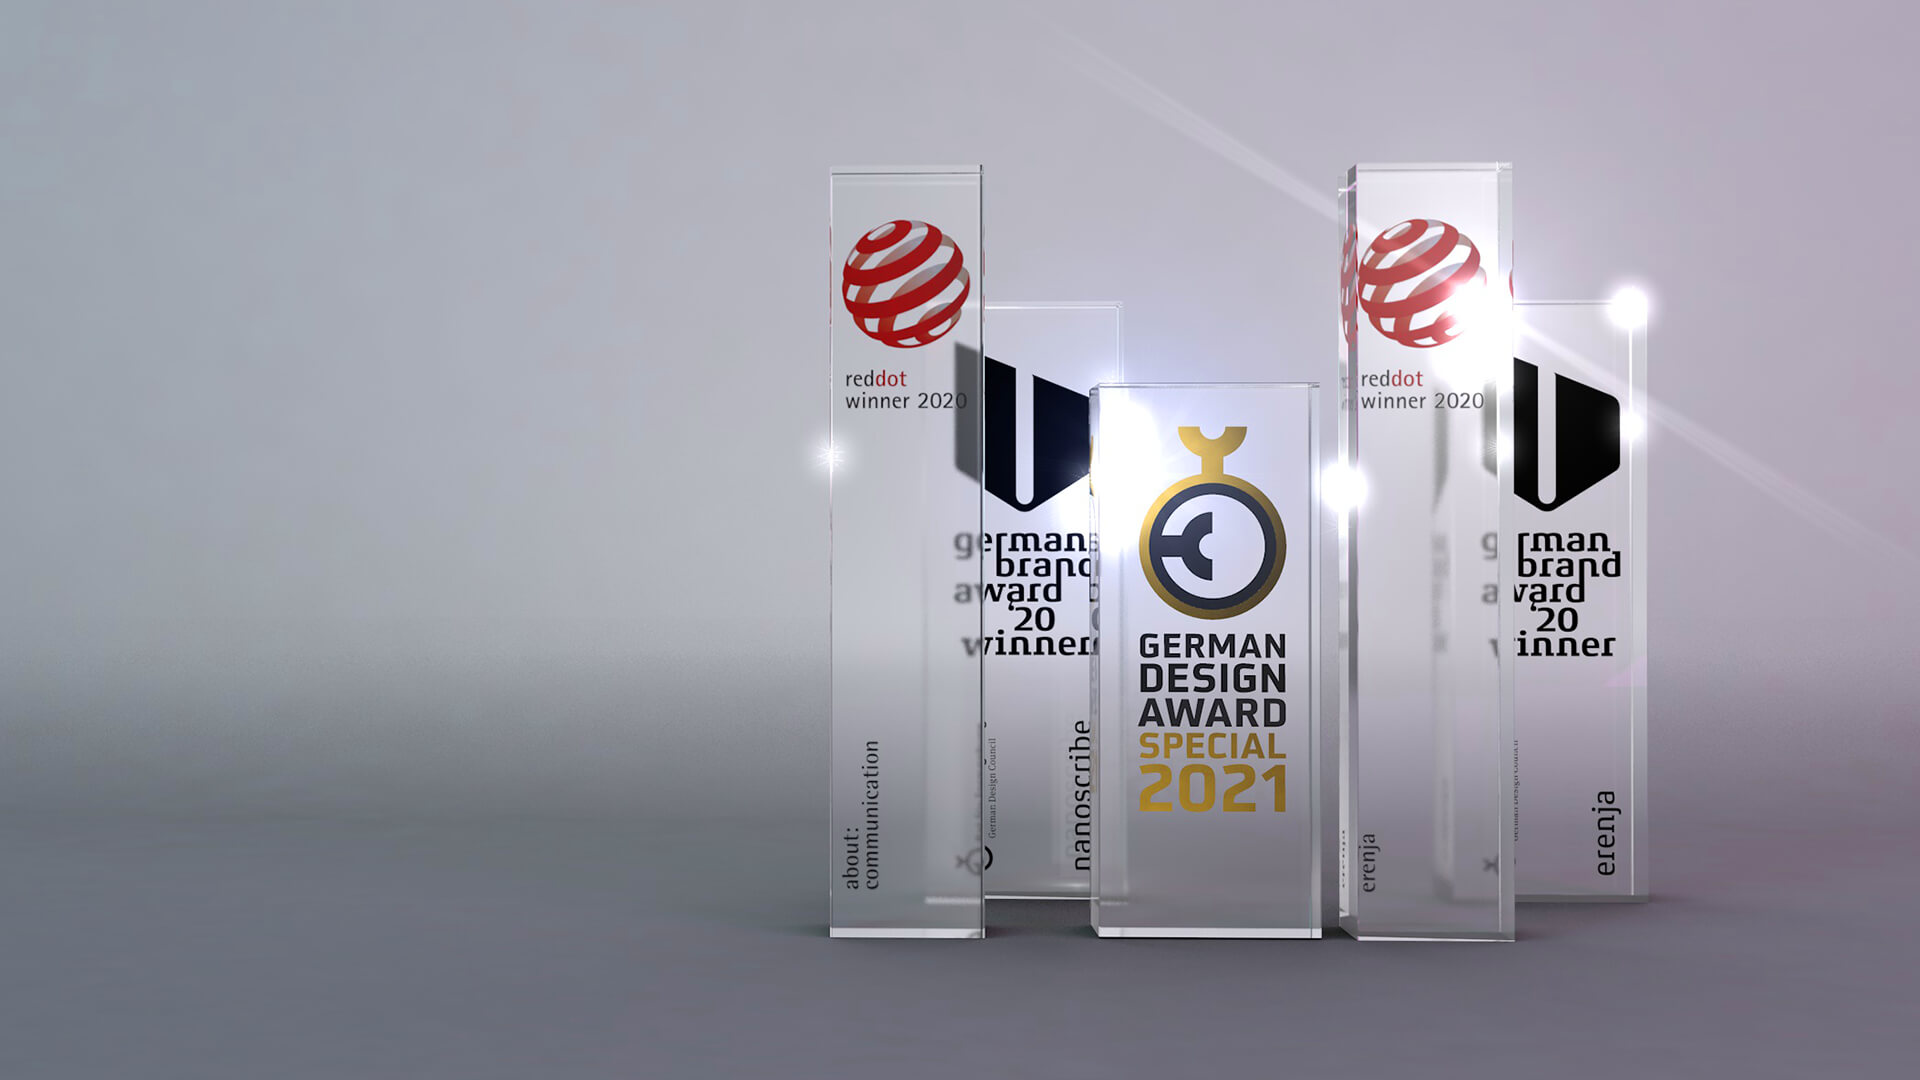 Auszeichnungen und Awards für Corporate Design und Kampagnen. Red Dot Award, German Brand Award, German Design Award